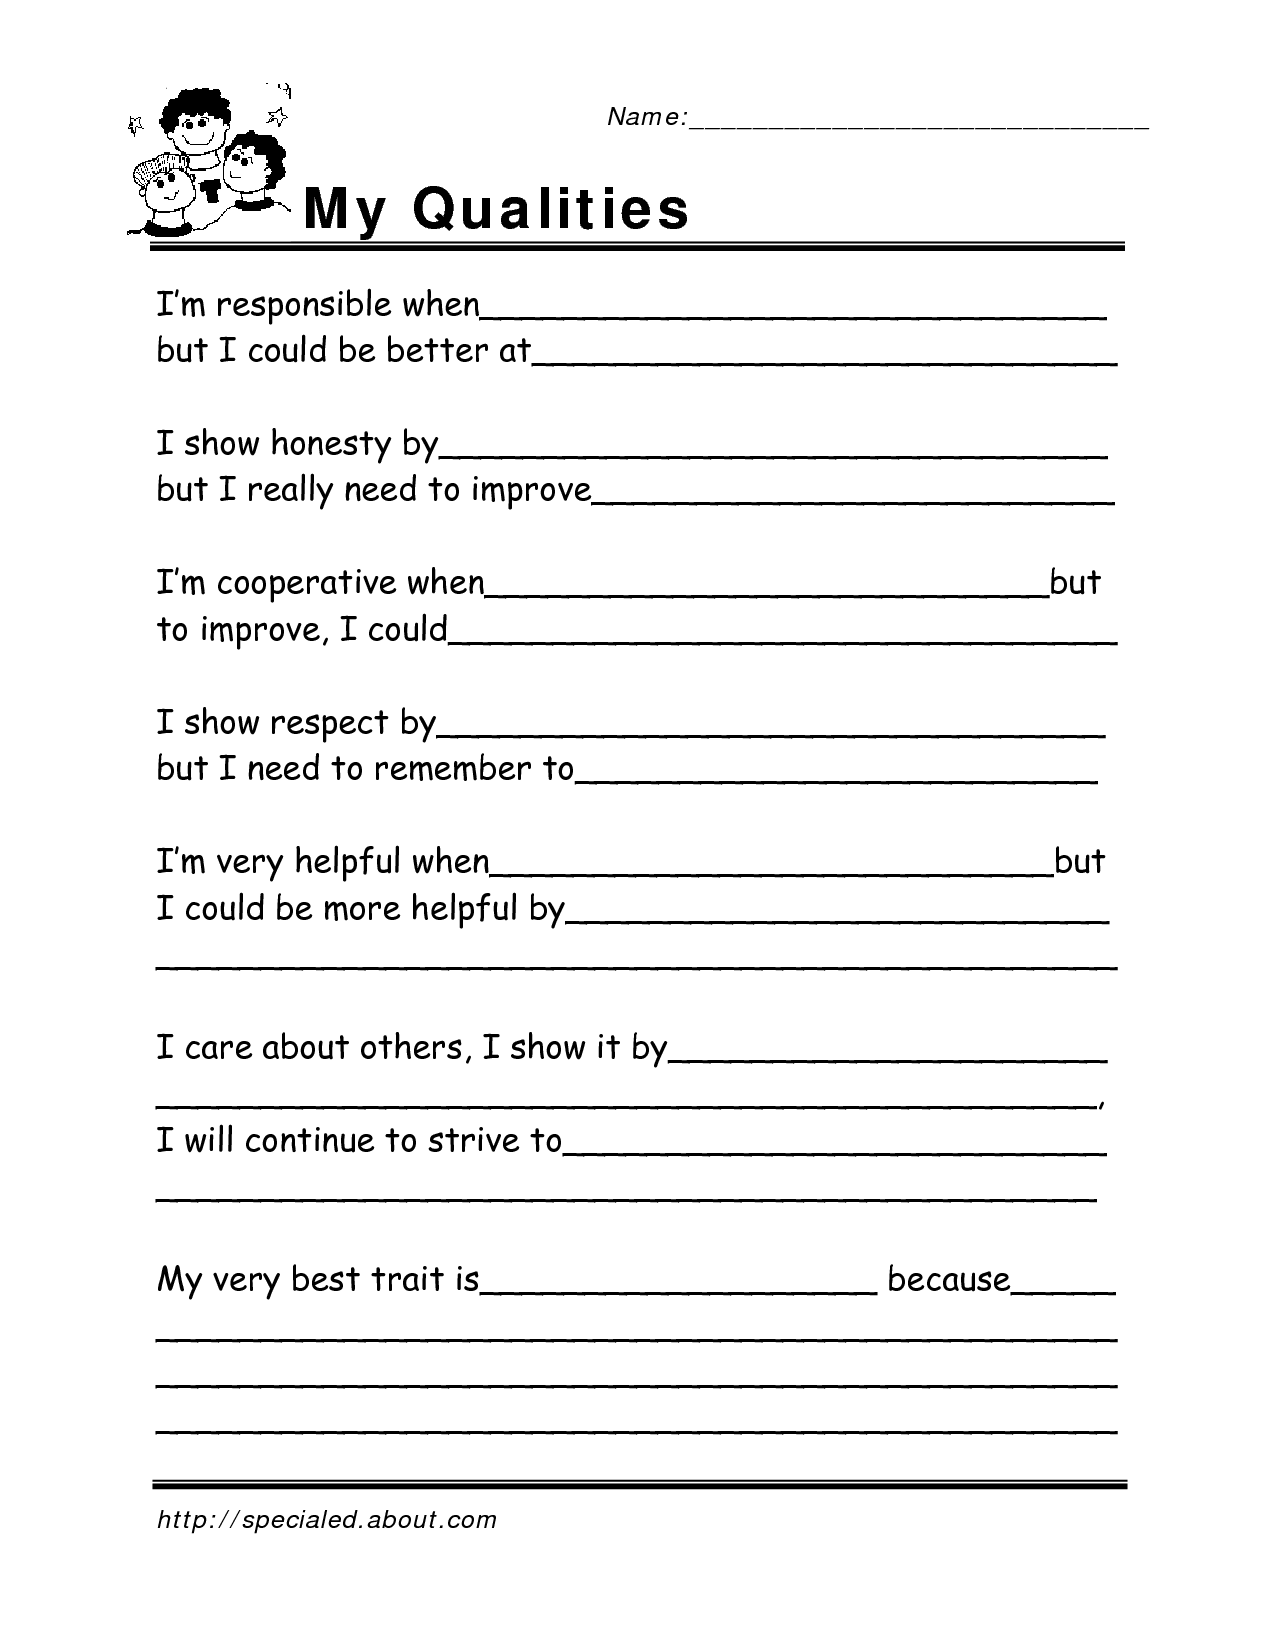 Worksheets Building Healthy Relationships Worksheet building healthy boundaries worksheets intrepidpath 7 best images of free printable relationship